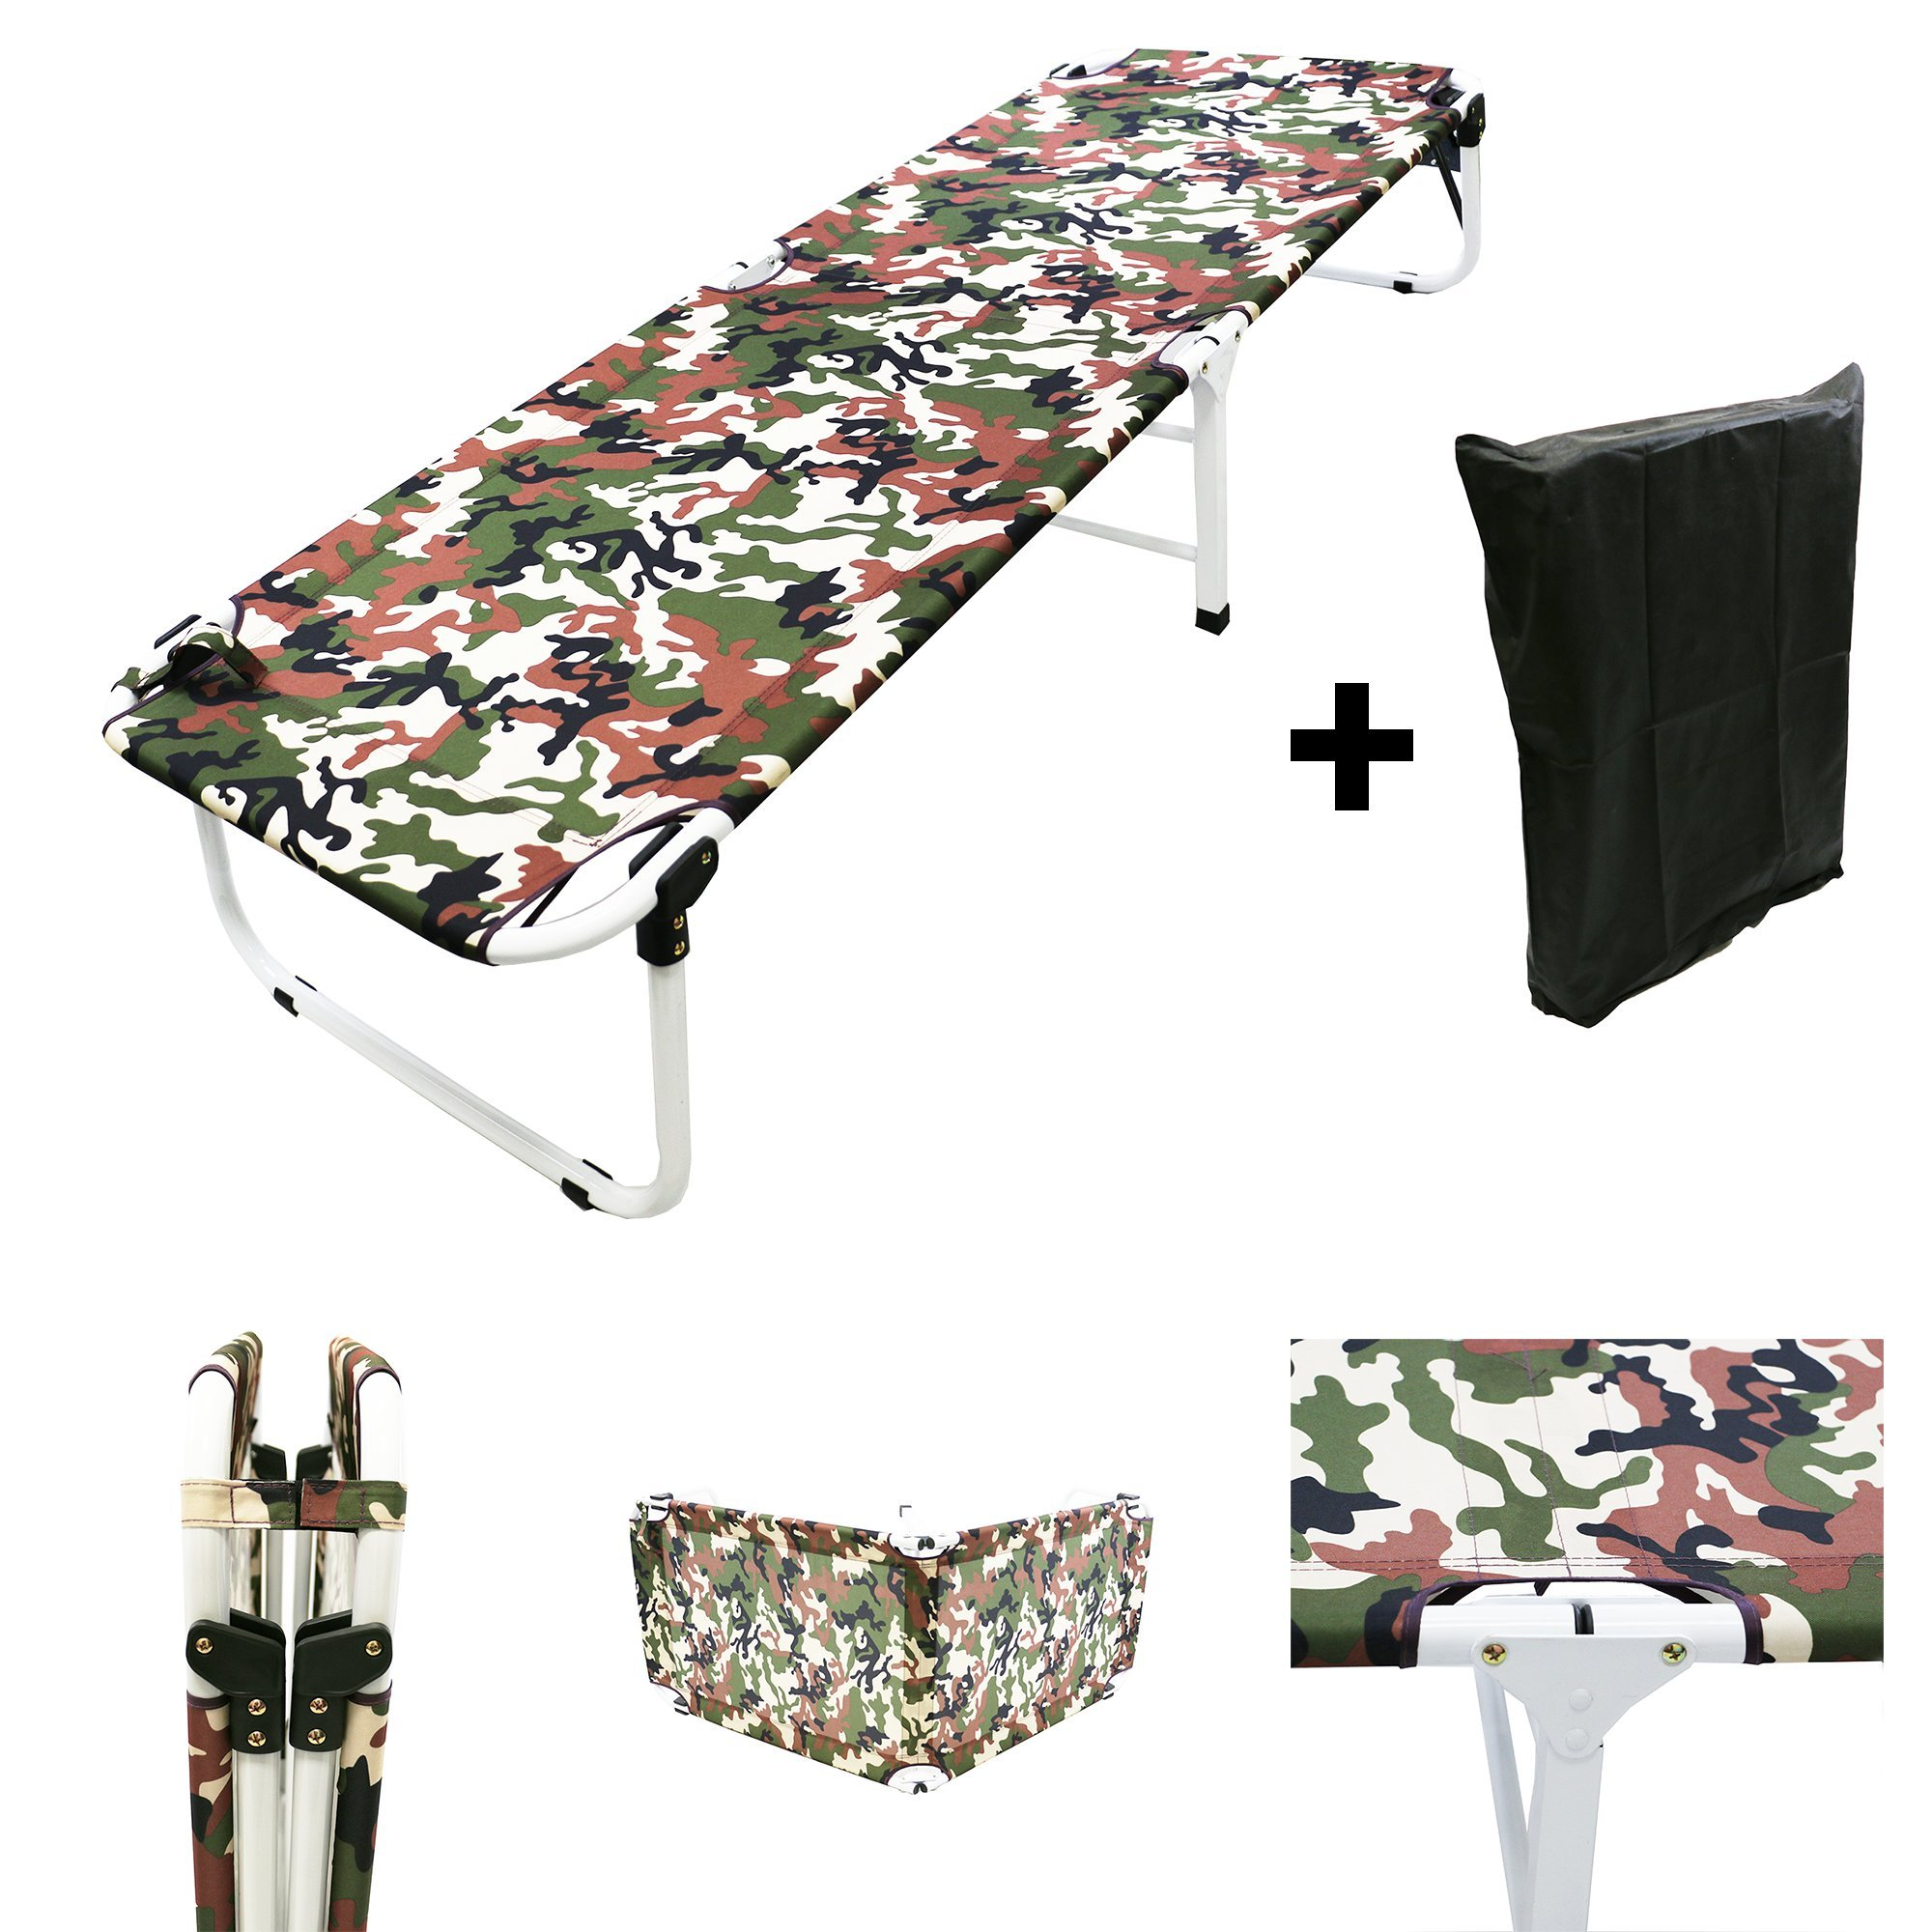 MagshionArmy/Camo Camping Folding Military Cot Outdoor + Free Storage Bag